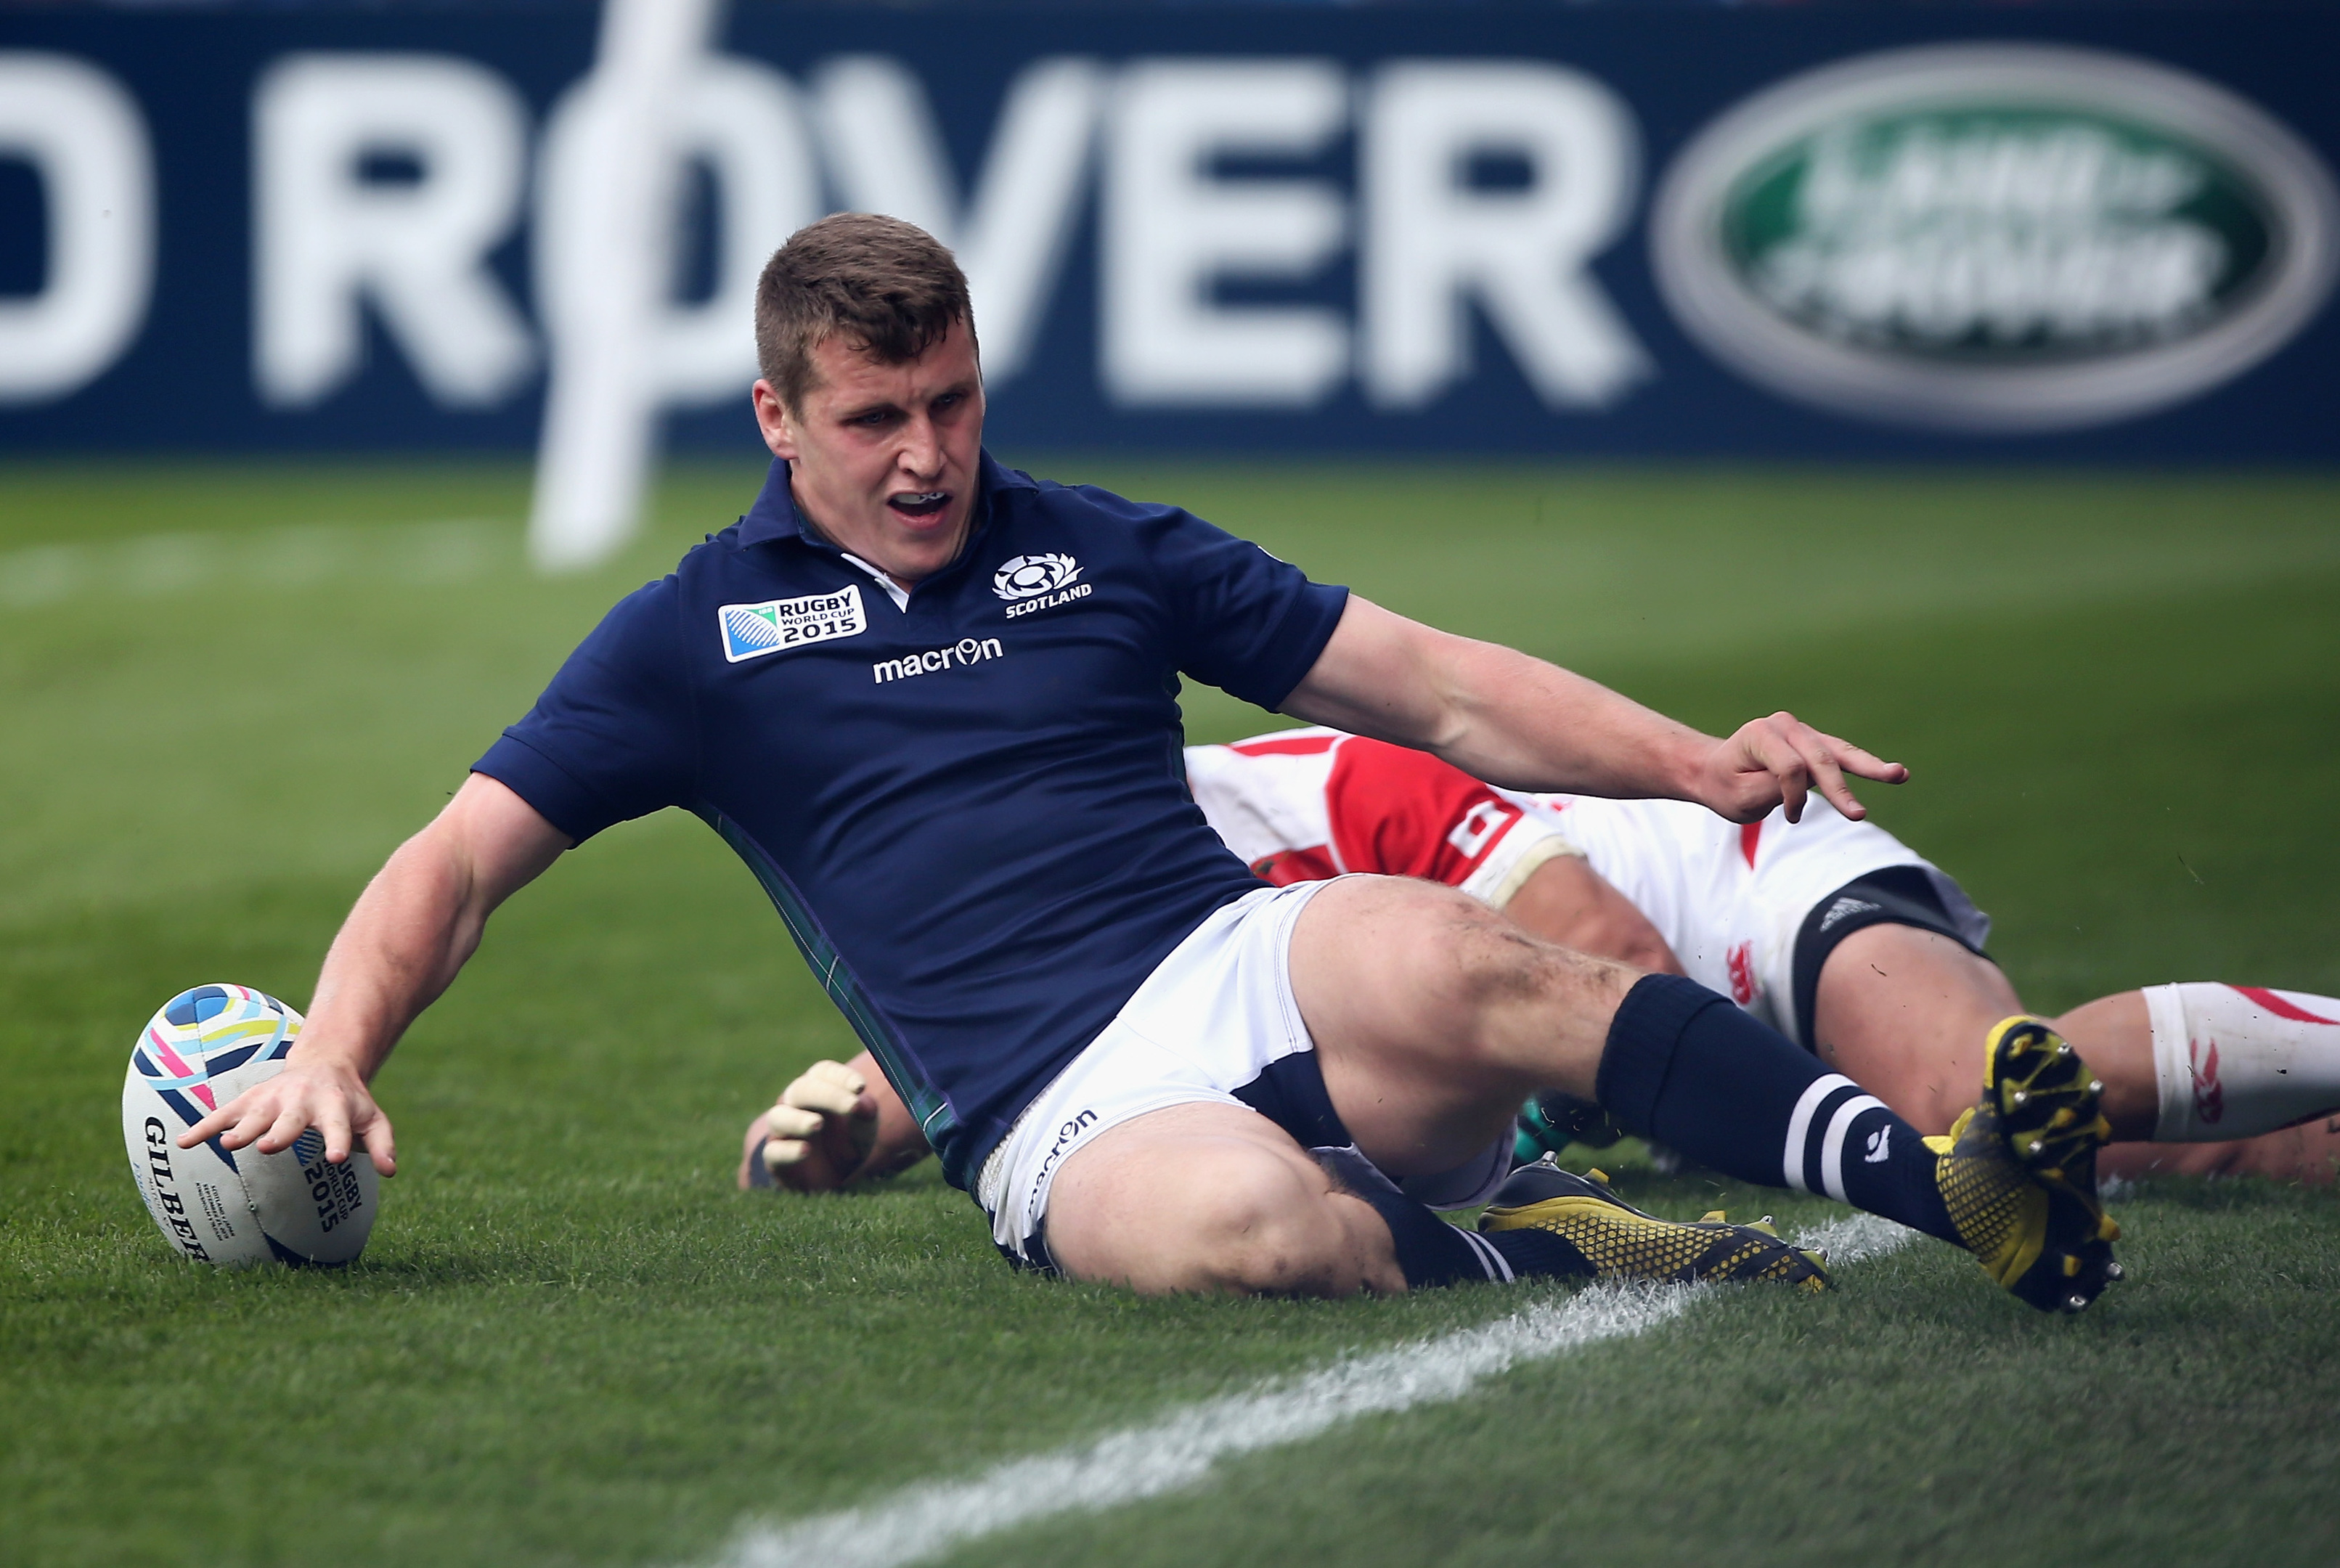 Mark Bennett scoring against Japan in the 2015 World Cup, one his six tries for Scotland.